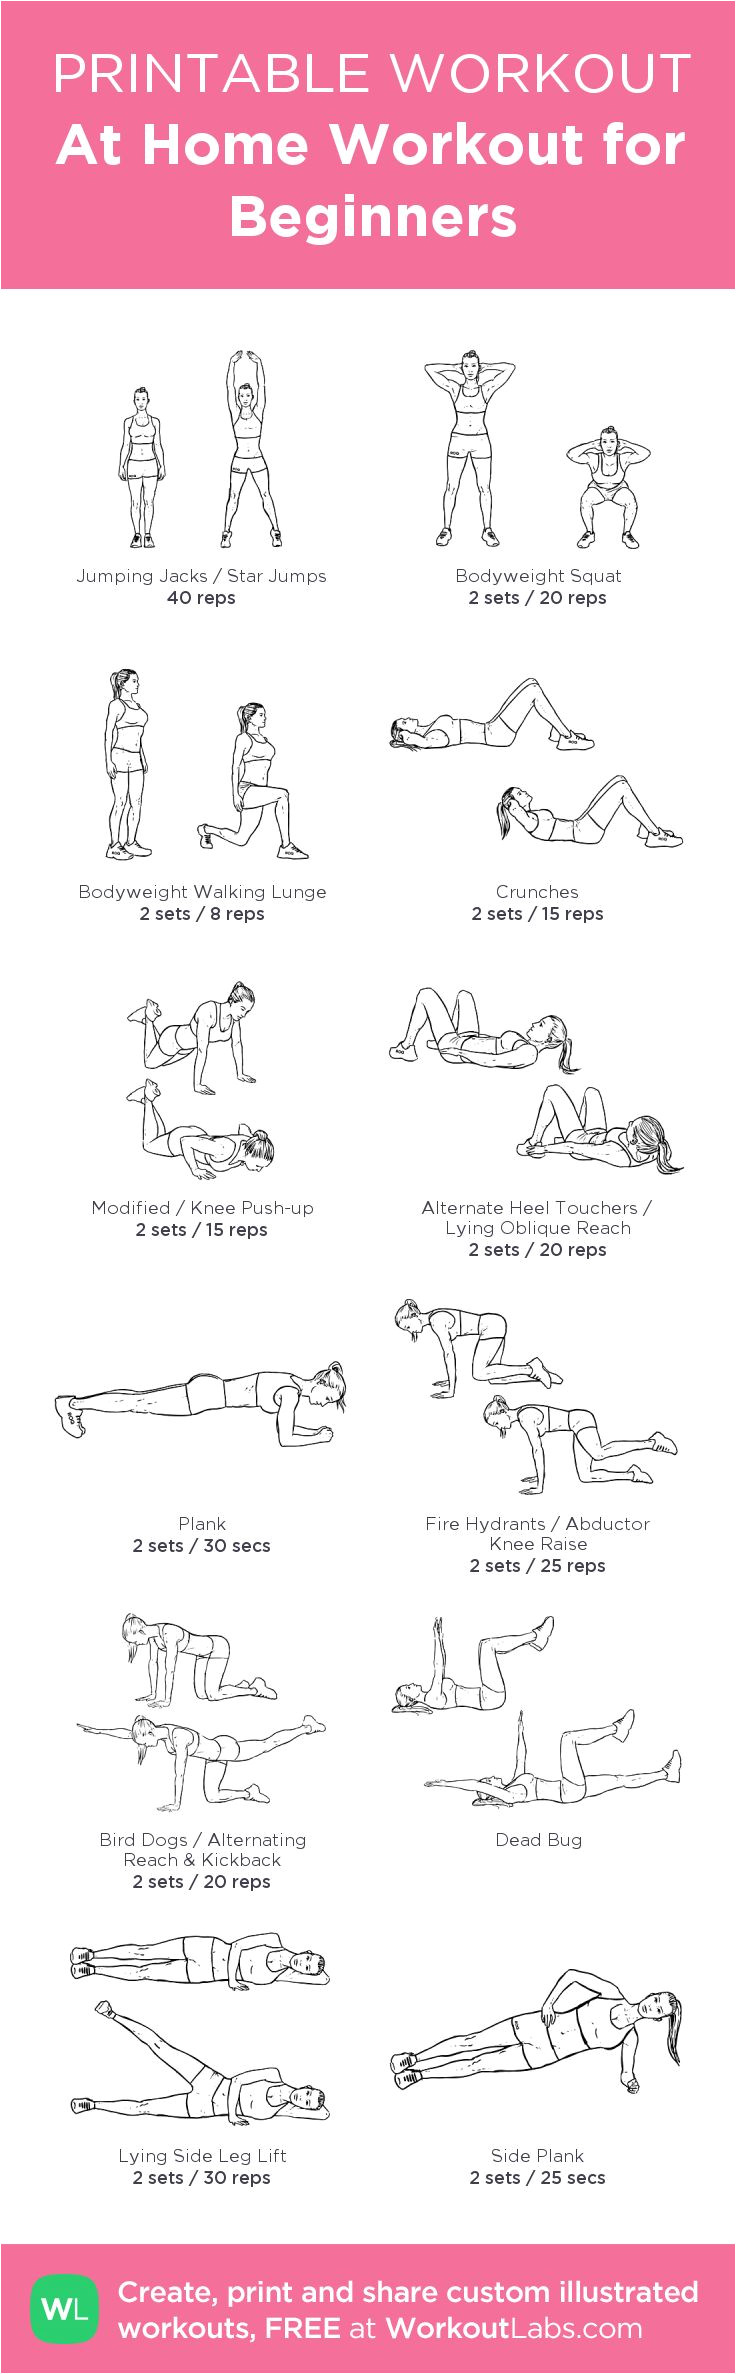 home workouts and exercises